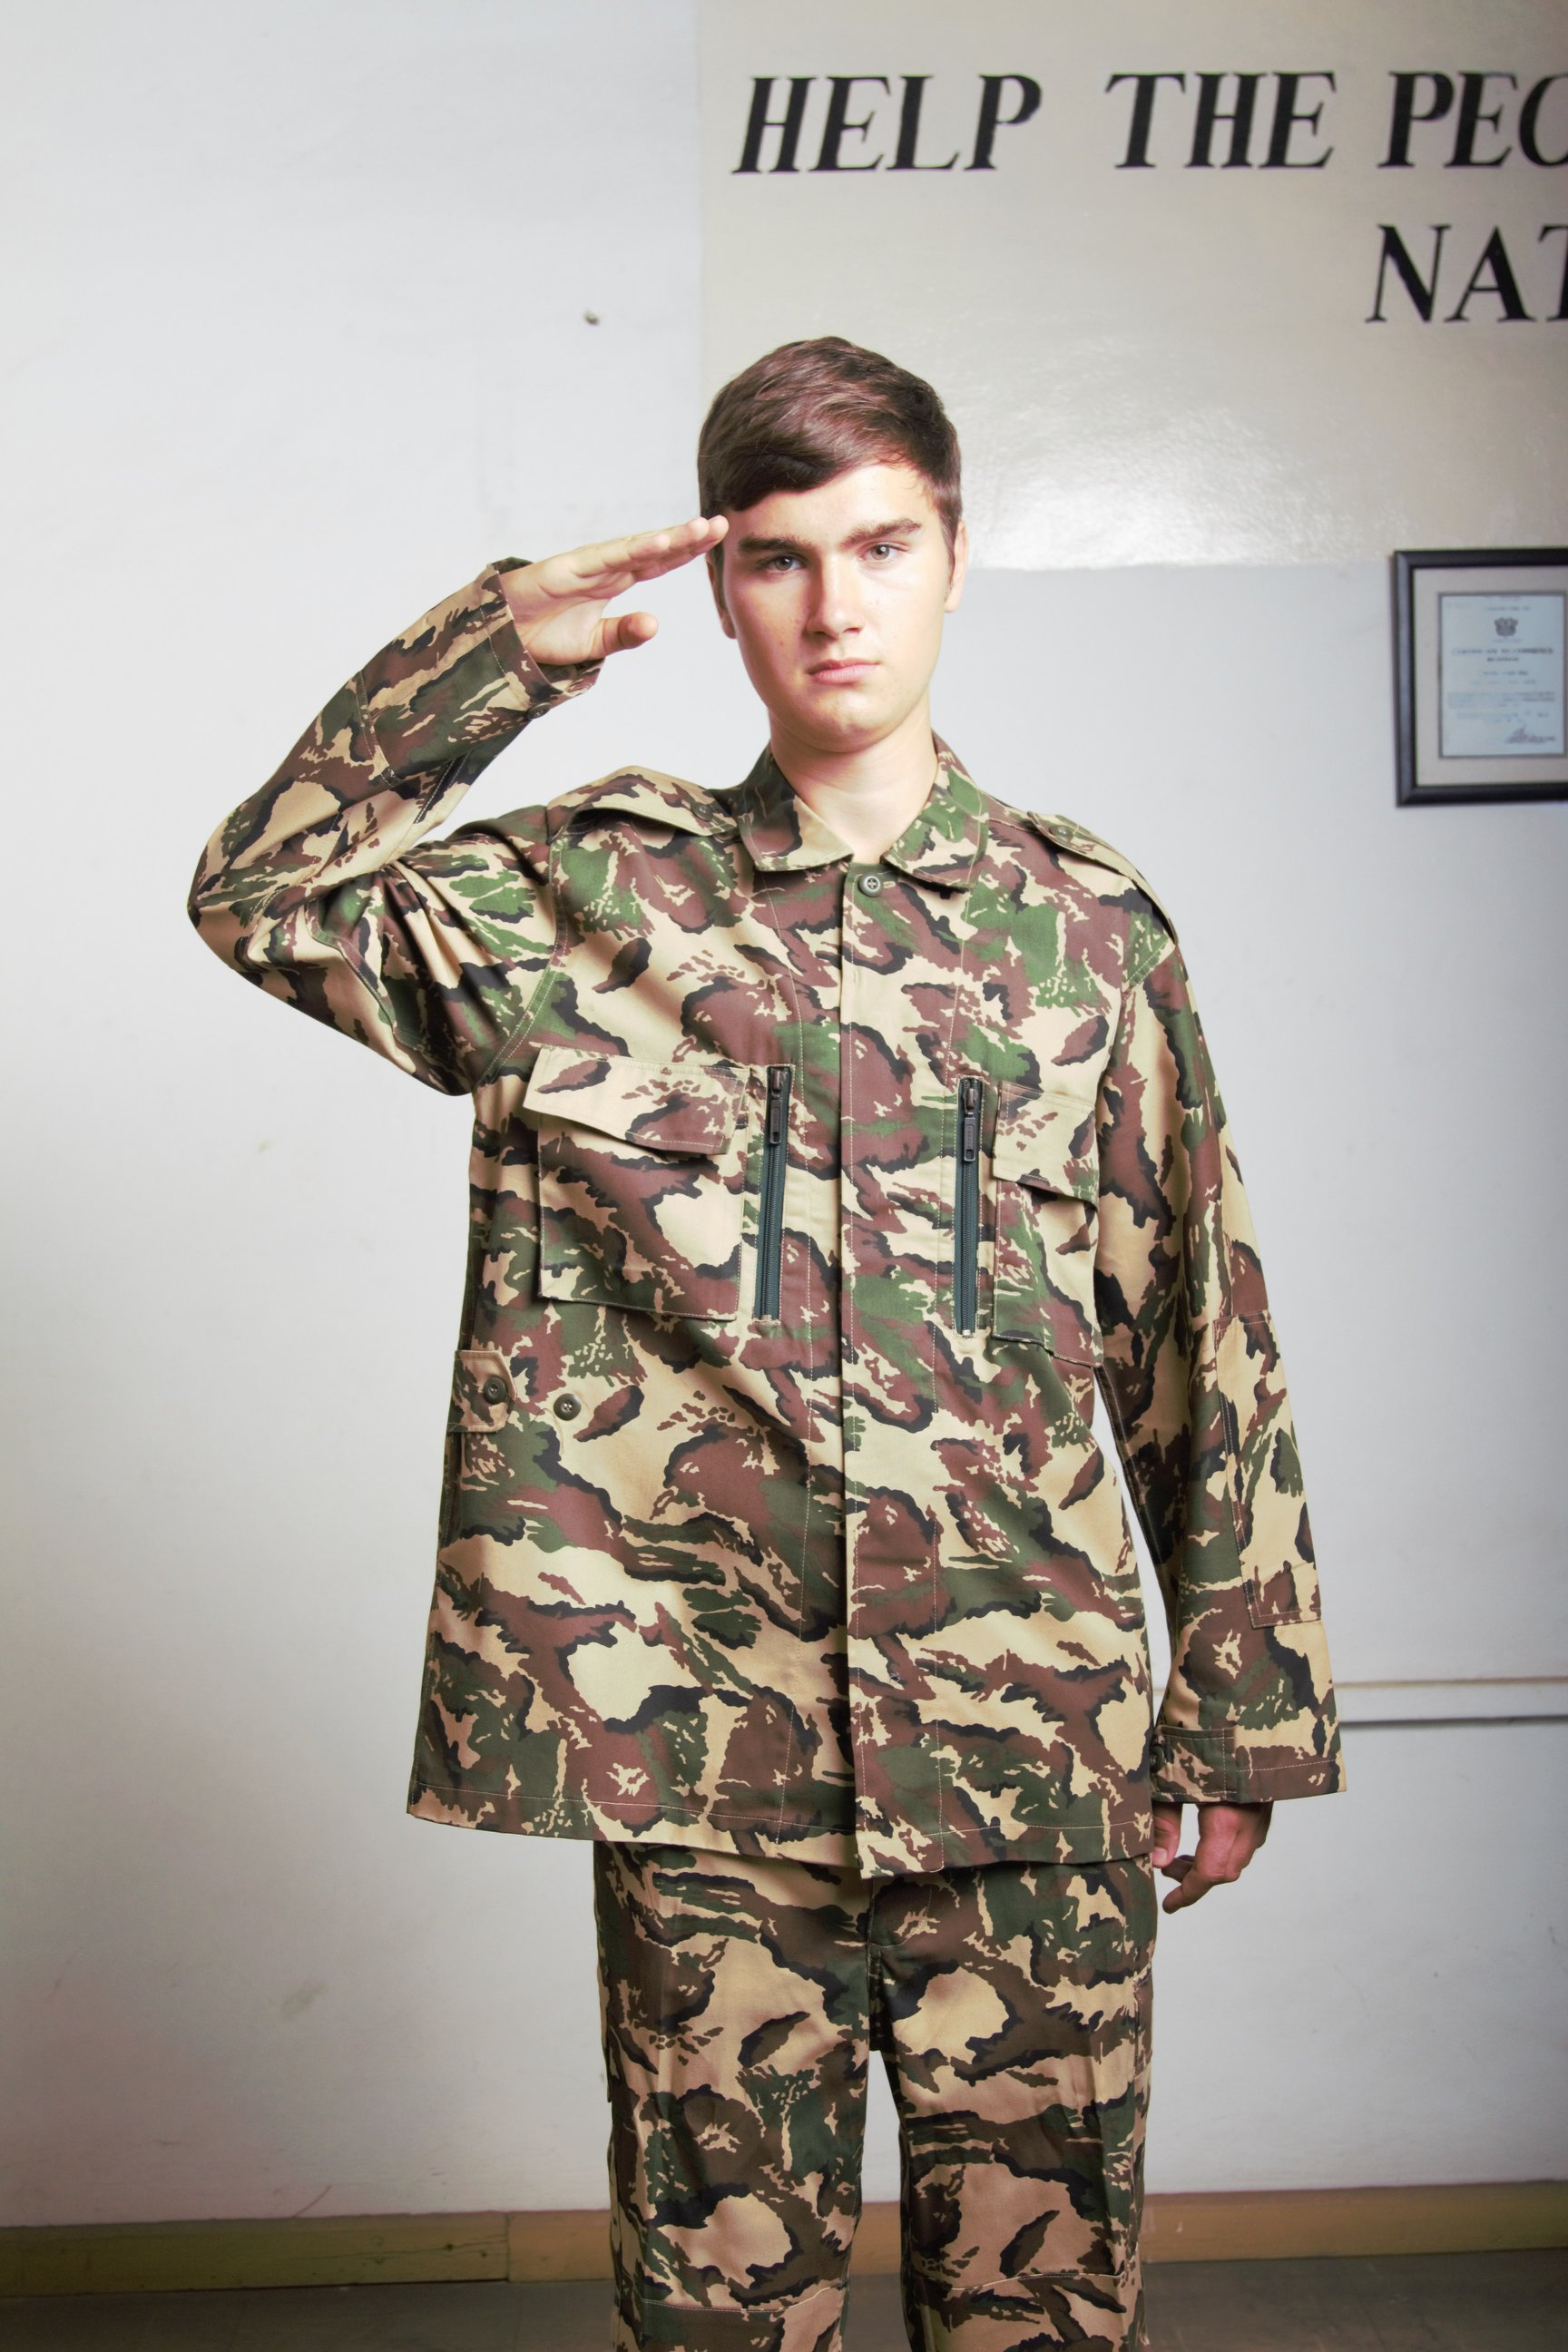 rsz_uniform_in_camouflage_fabric